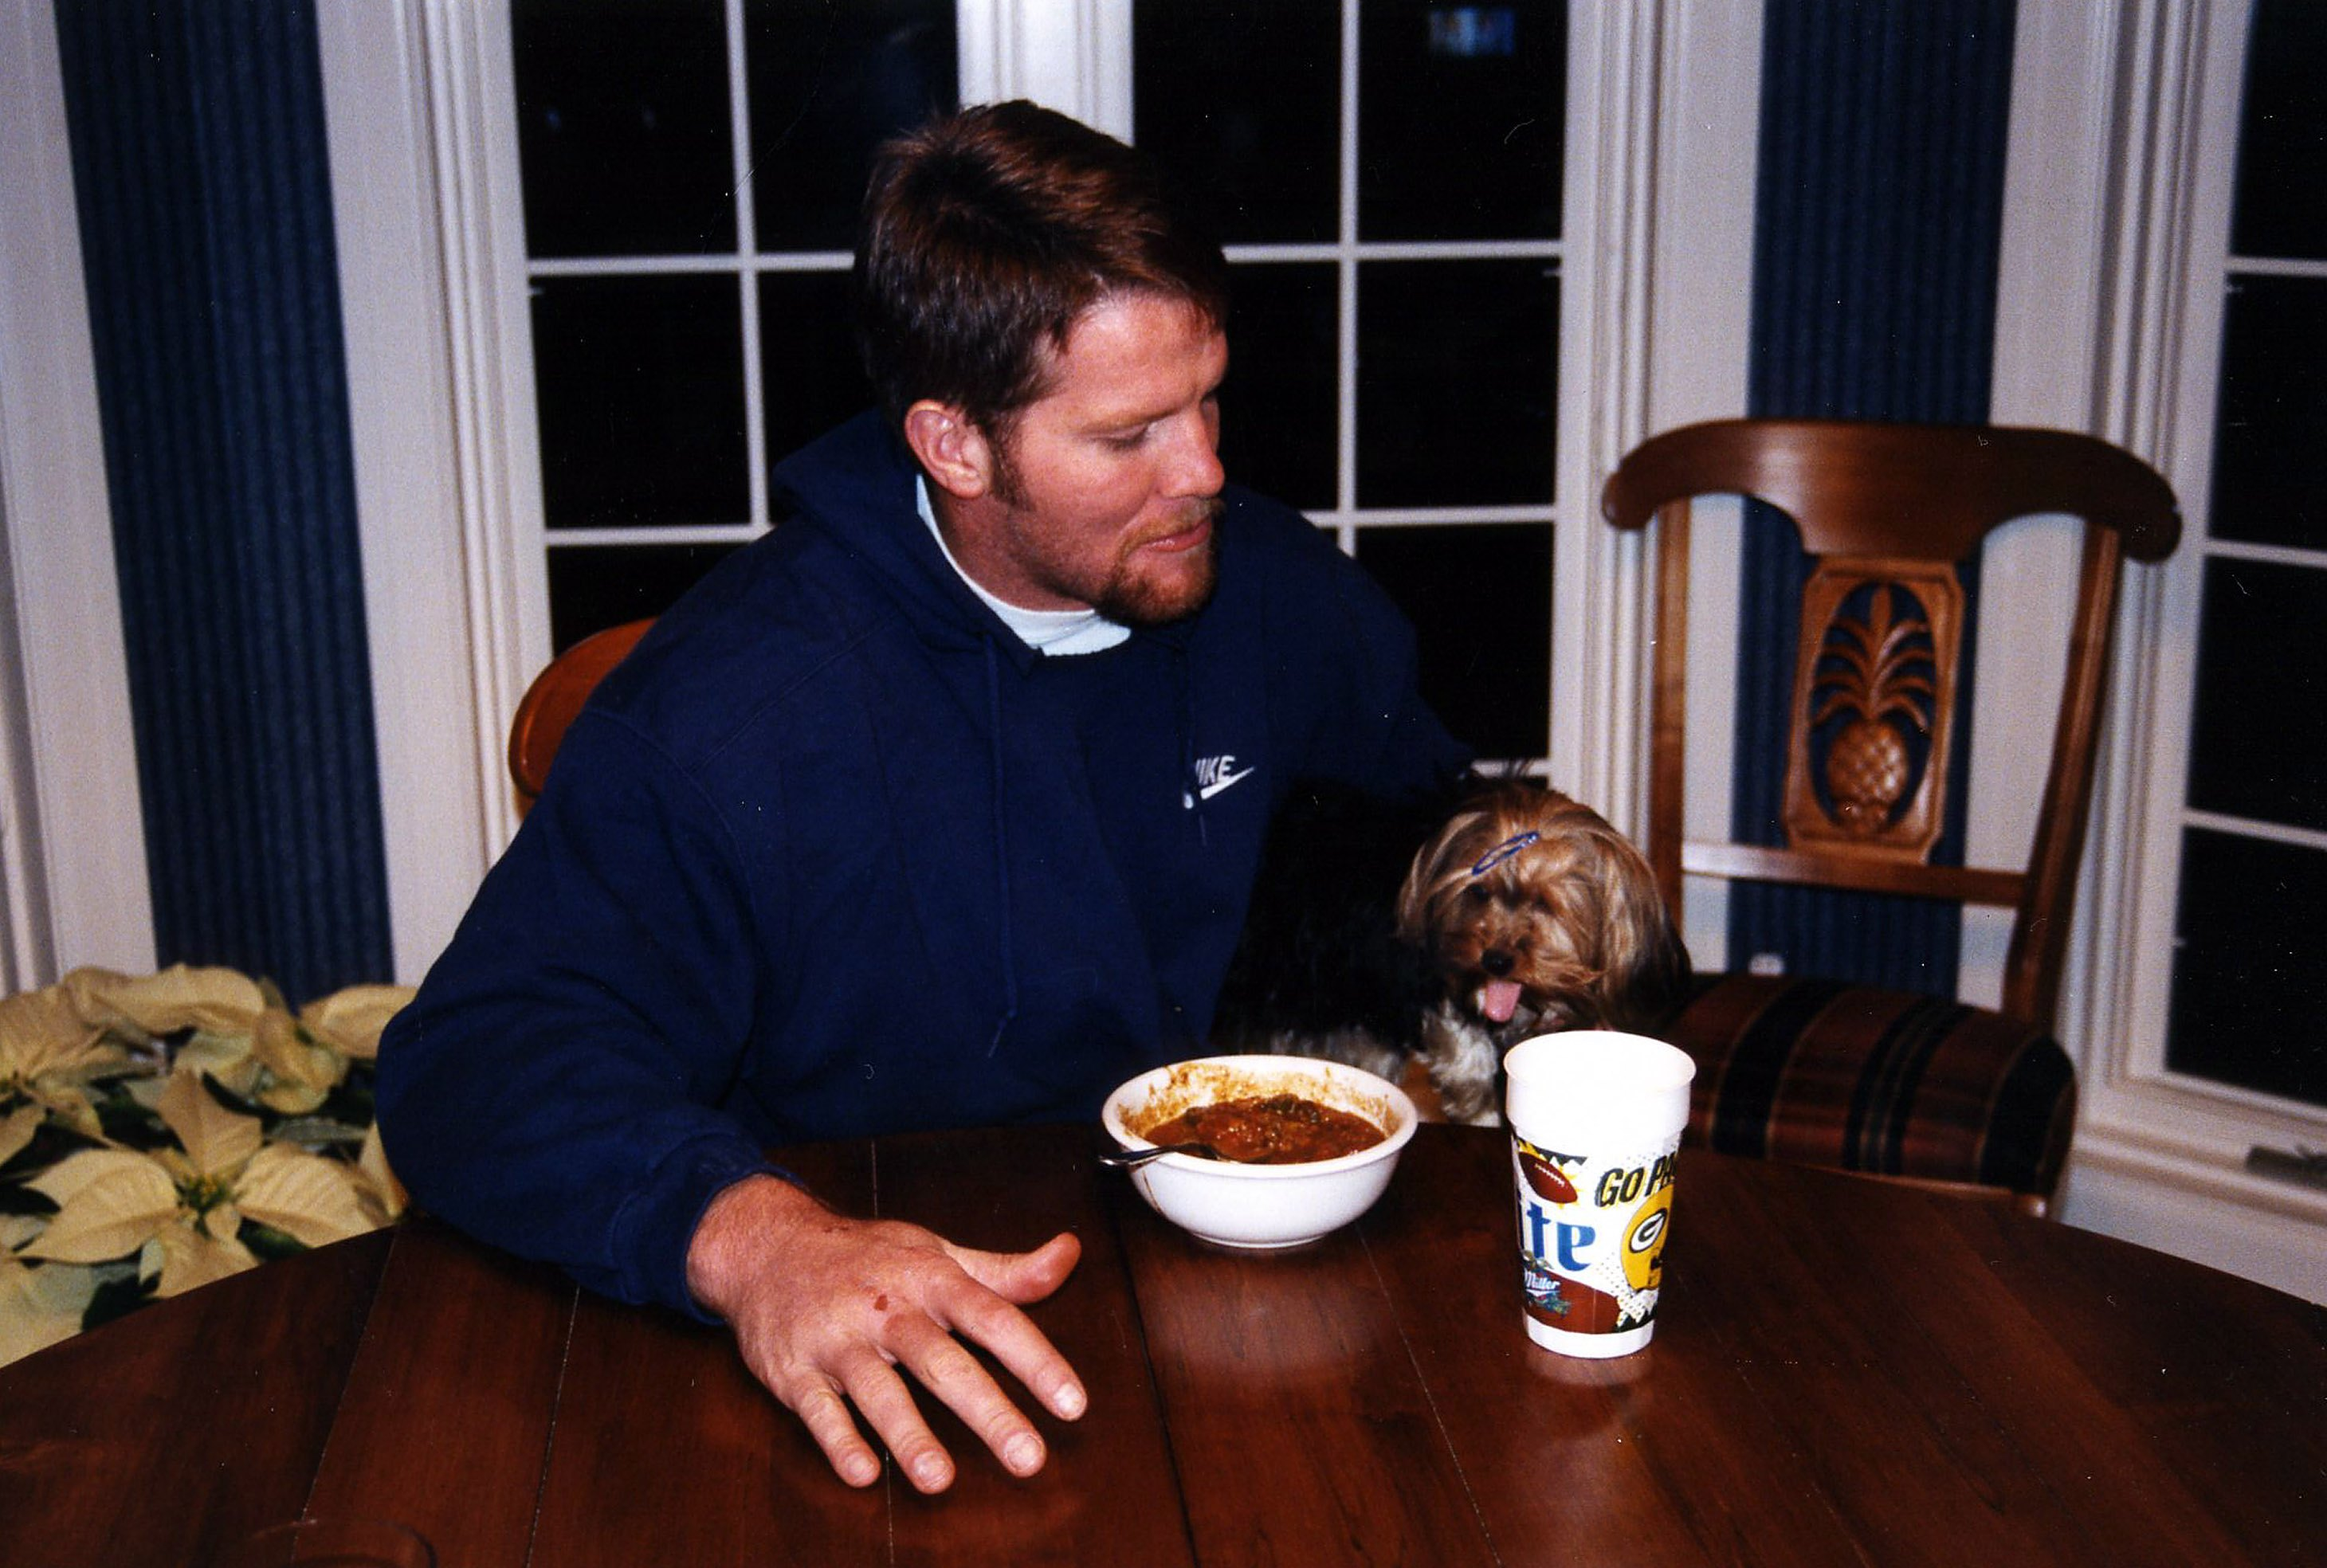 Quarterback Brett Favre with his dog Jaz at his home in Green Bay, Wisconson in 1998